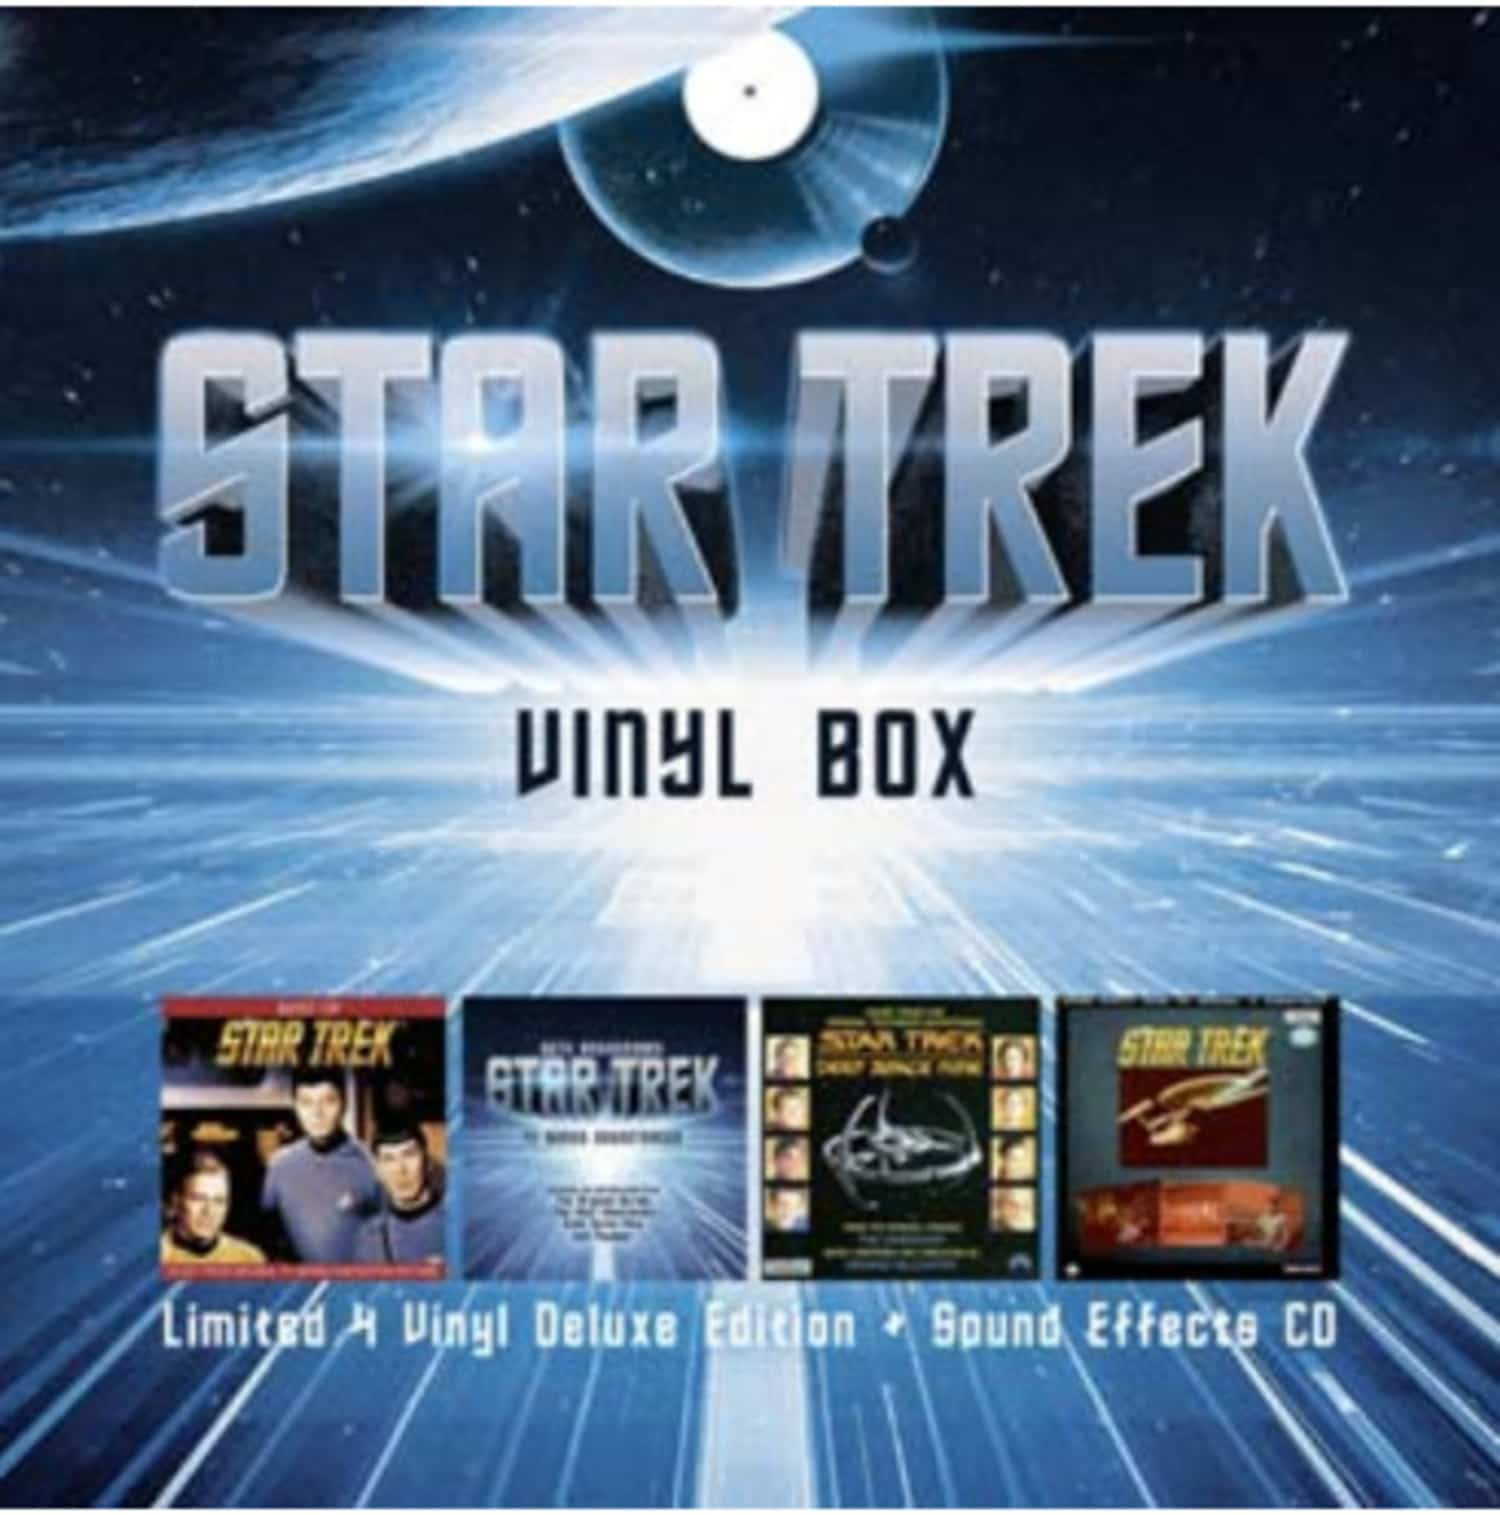 Star Trek - STAR TREK VINYL BOX